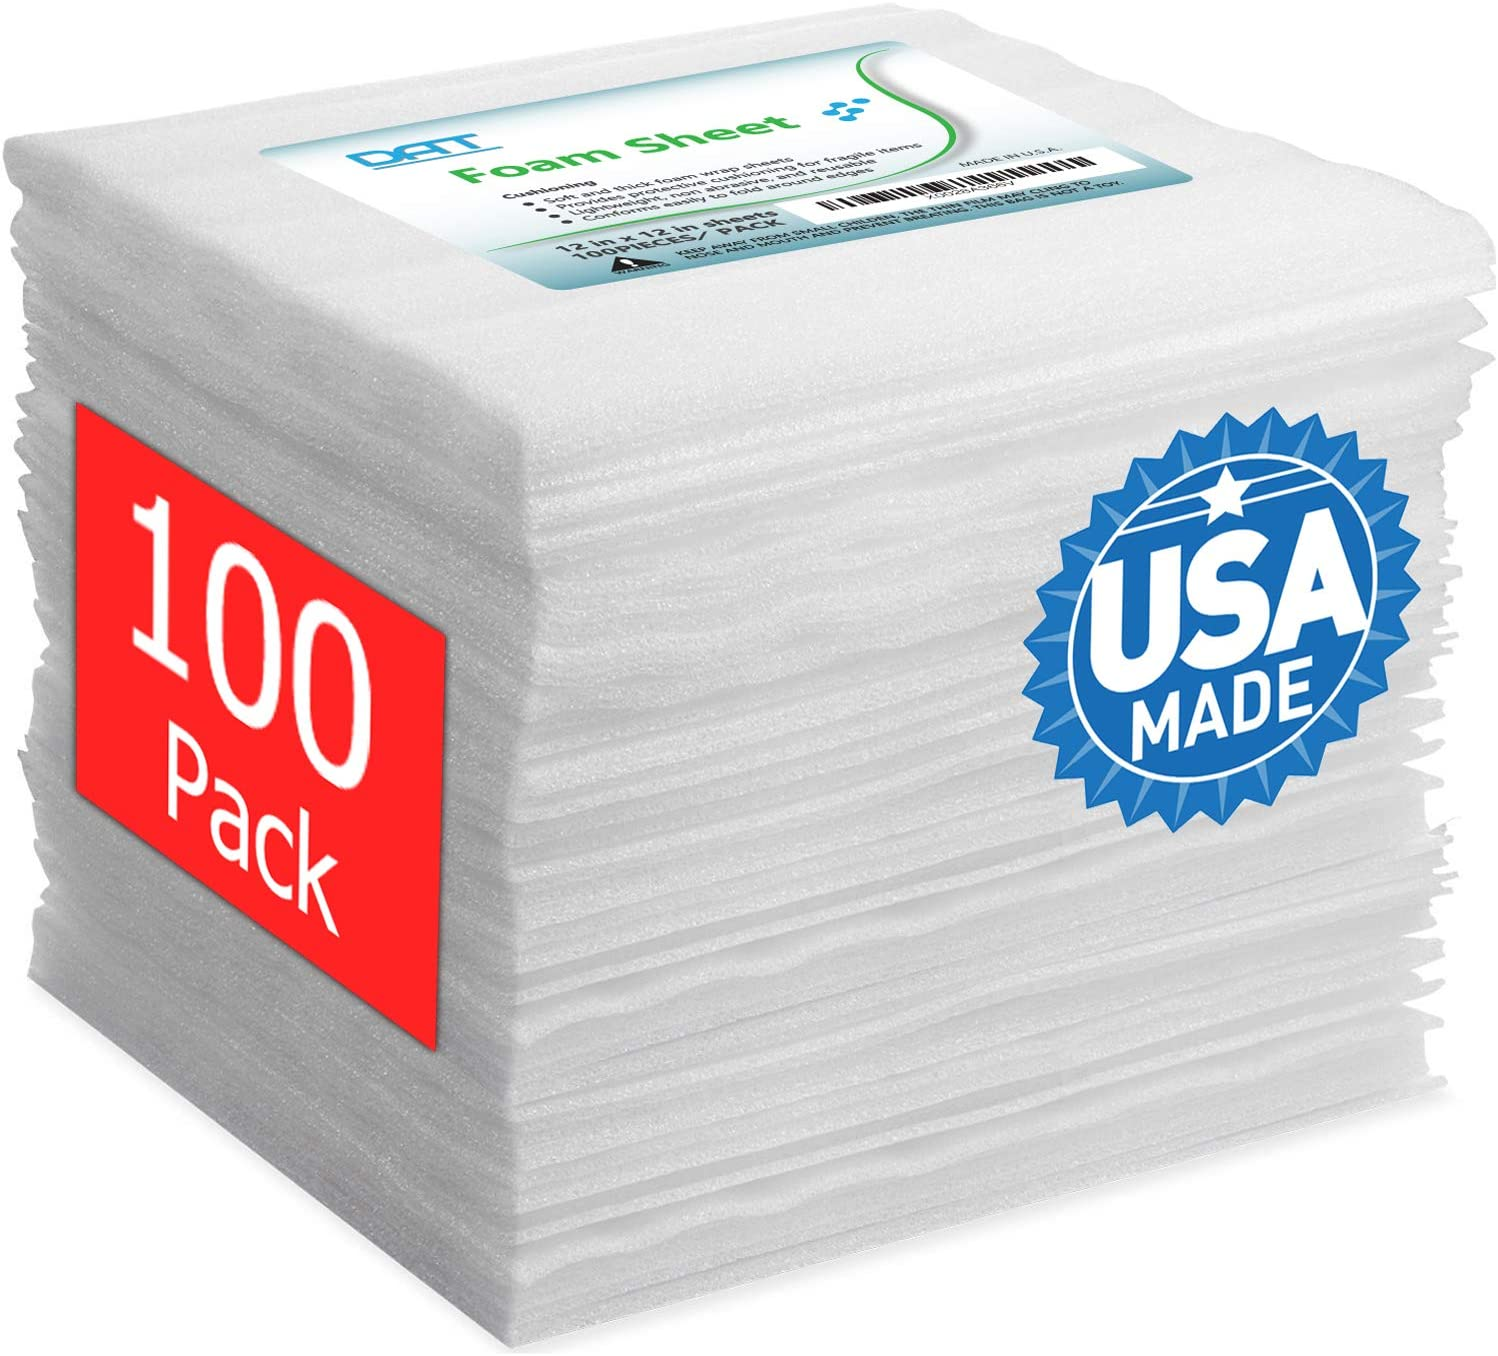 "100 Pack Foam Sheets, DAT 12"" x 12"", 1/16"" Thick, Foam Wrap Cushioning Material, Moving Supplies for Packing Storage and Shipping"